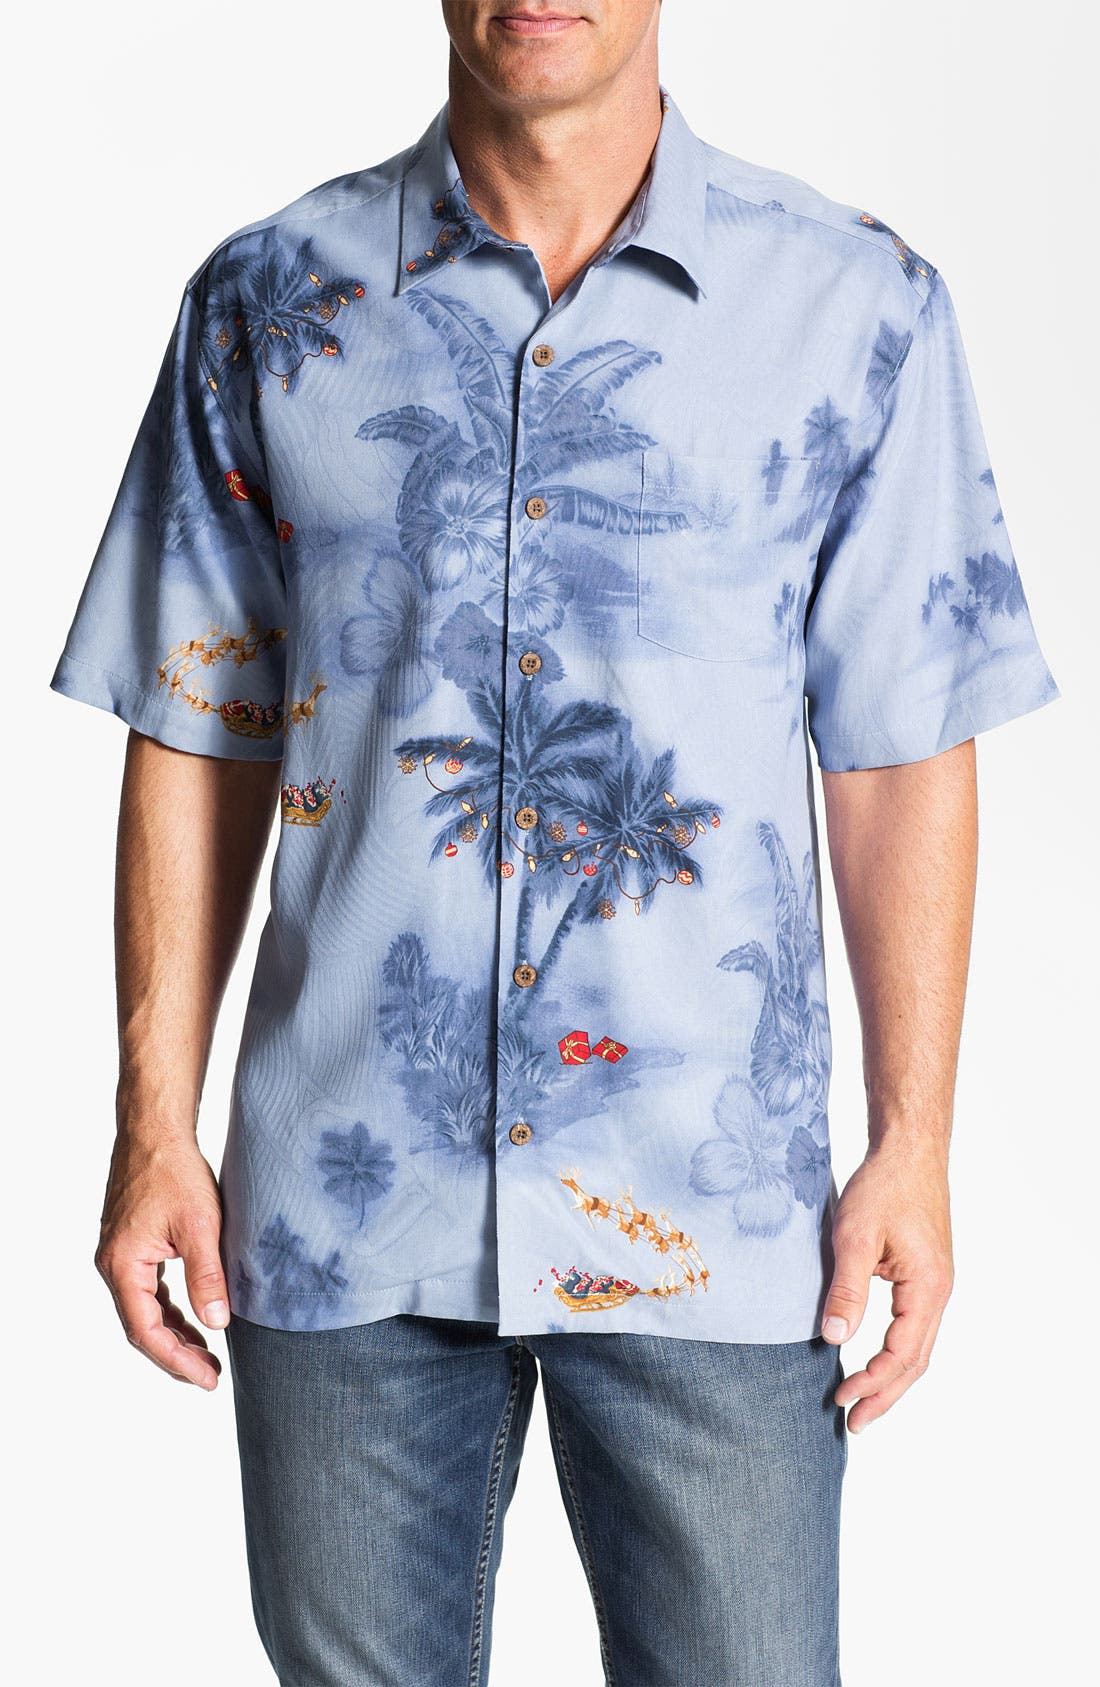 Alternate Image 1 Selected - Tommy Bahama 'Dashing Through The Palms' Silk Campshirt